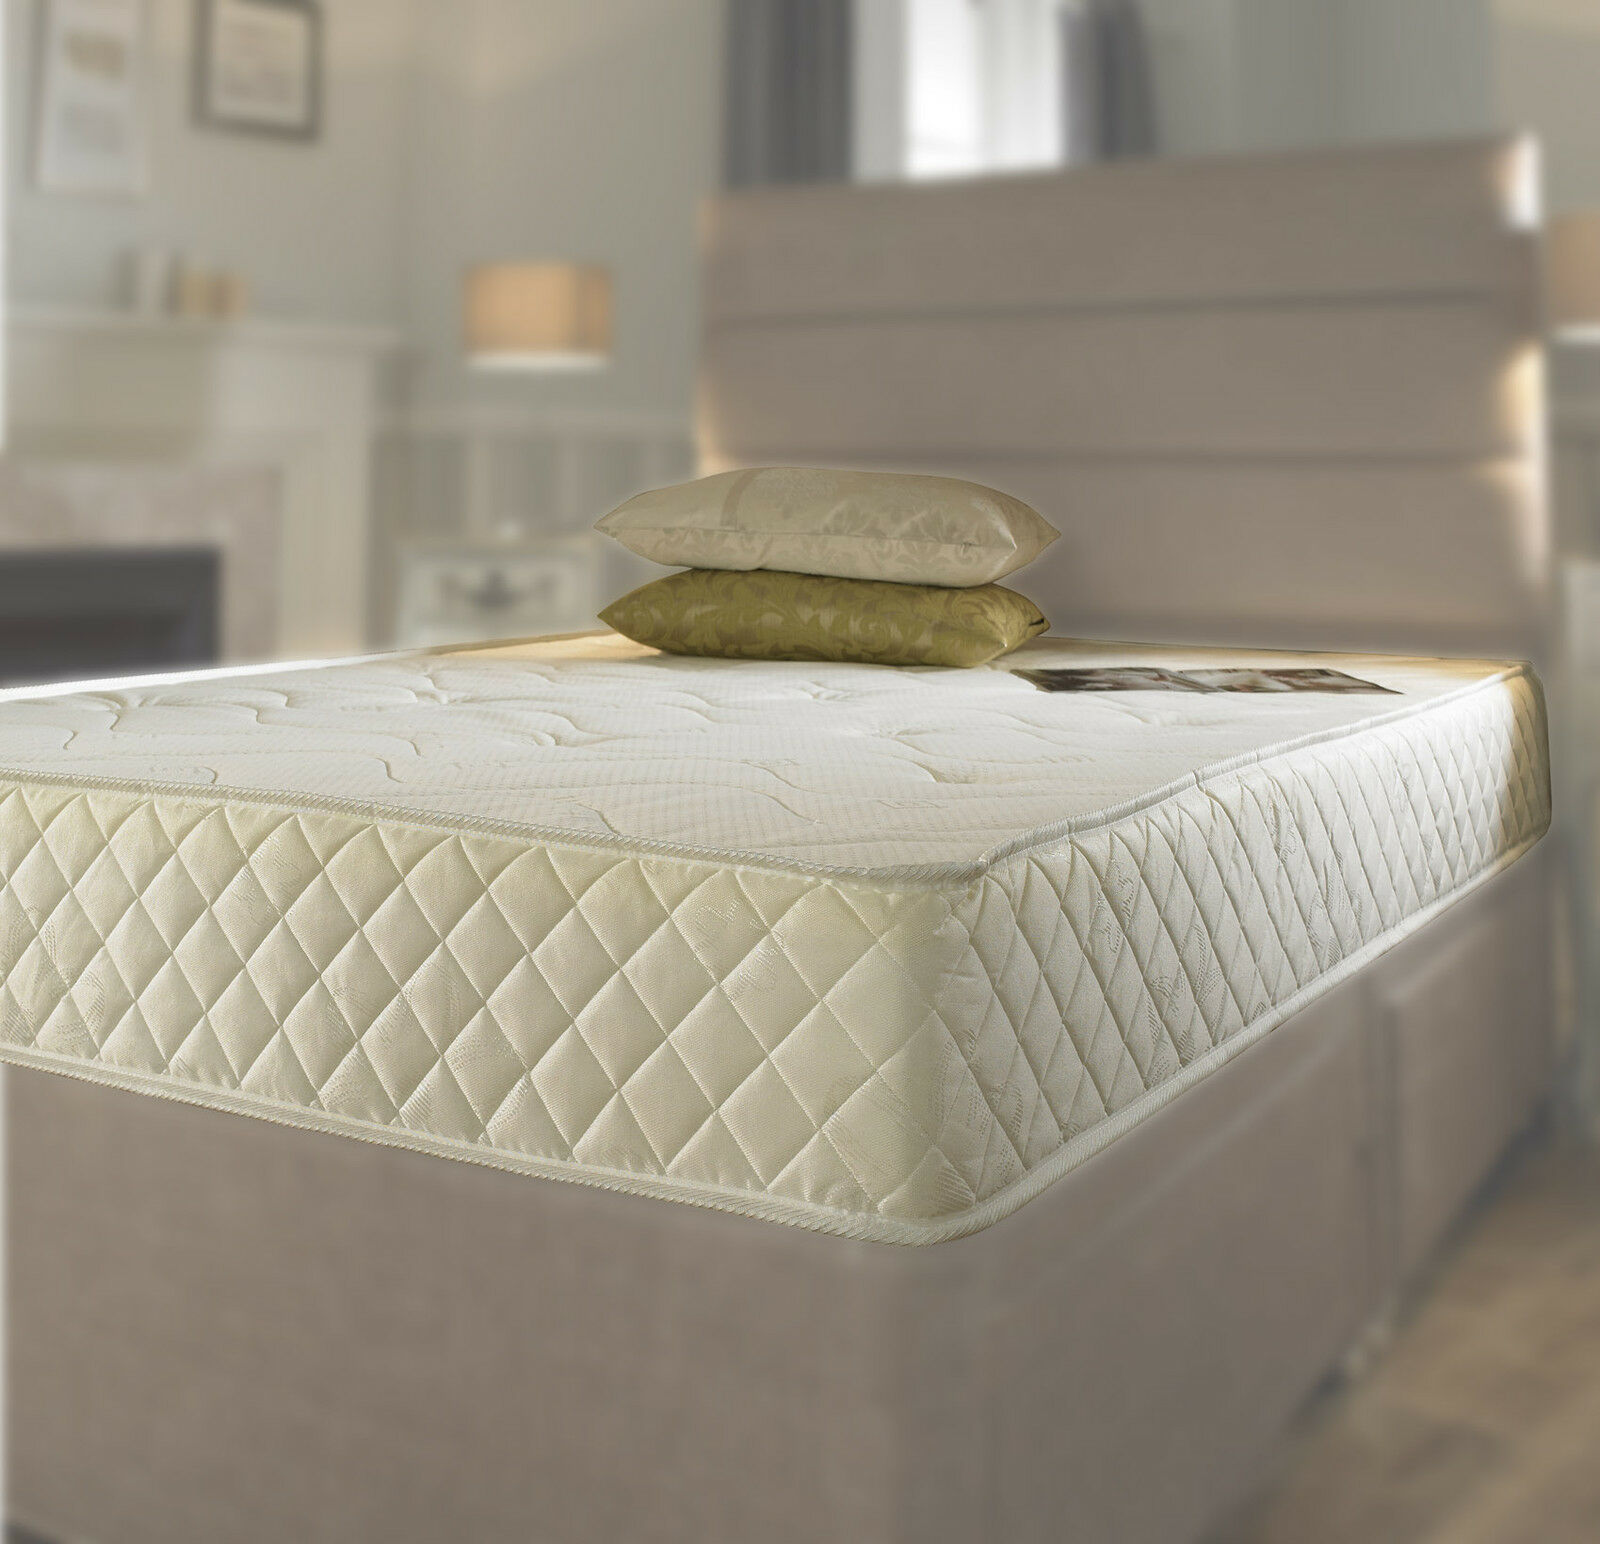 Memory foam matress new quilted sprung mattress 3ft single 4ft6 double 5ft king Double mattress memory foam